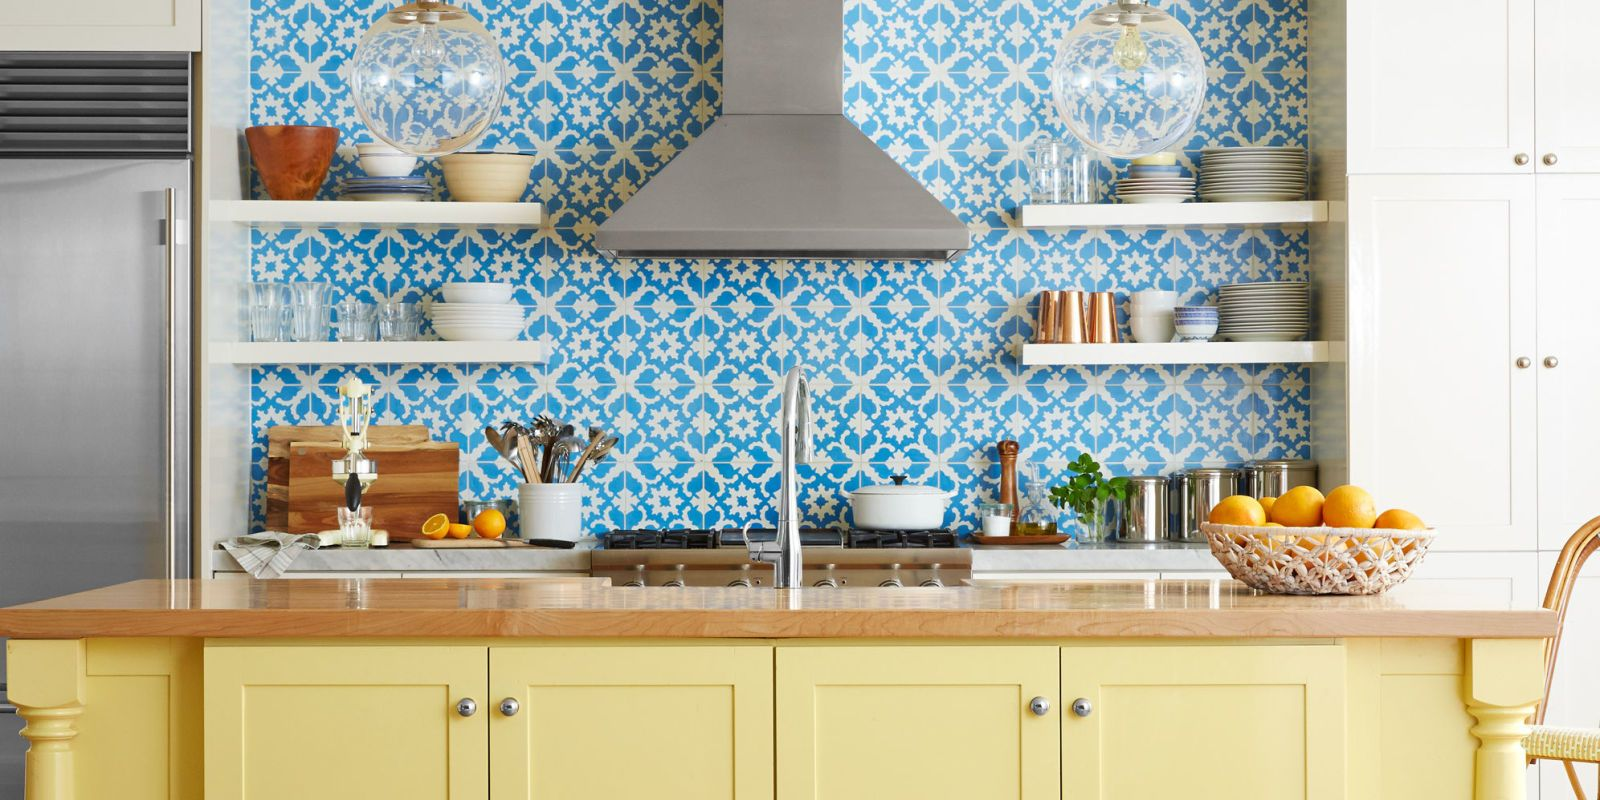 Creative of backsplash ideas for kitchen